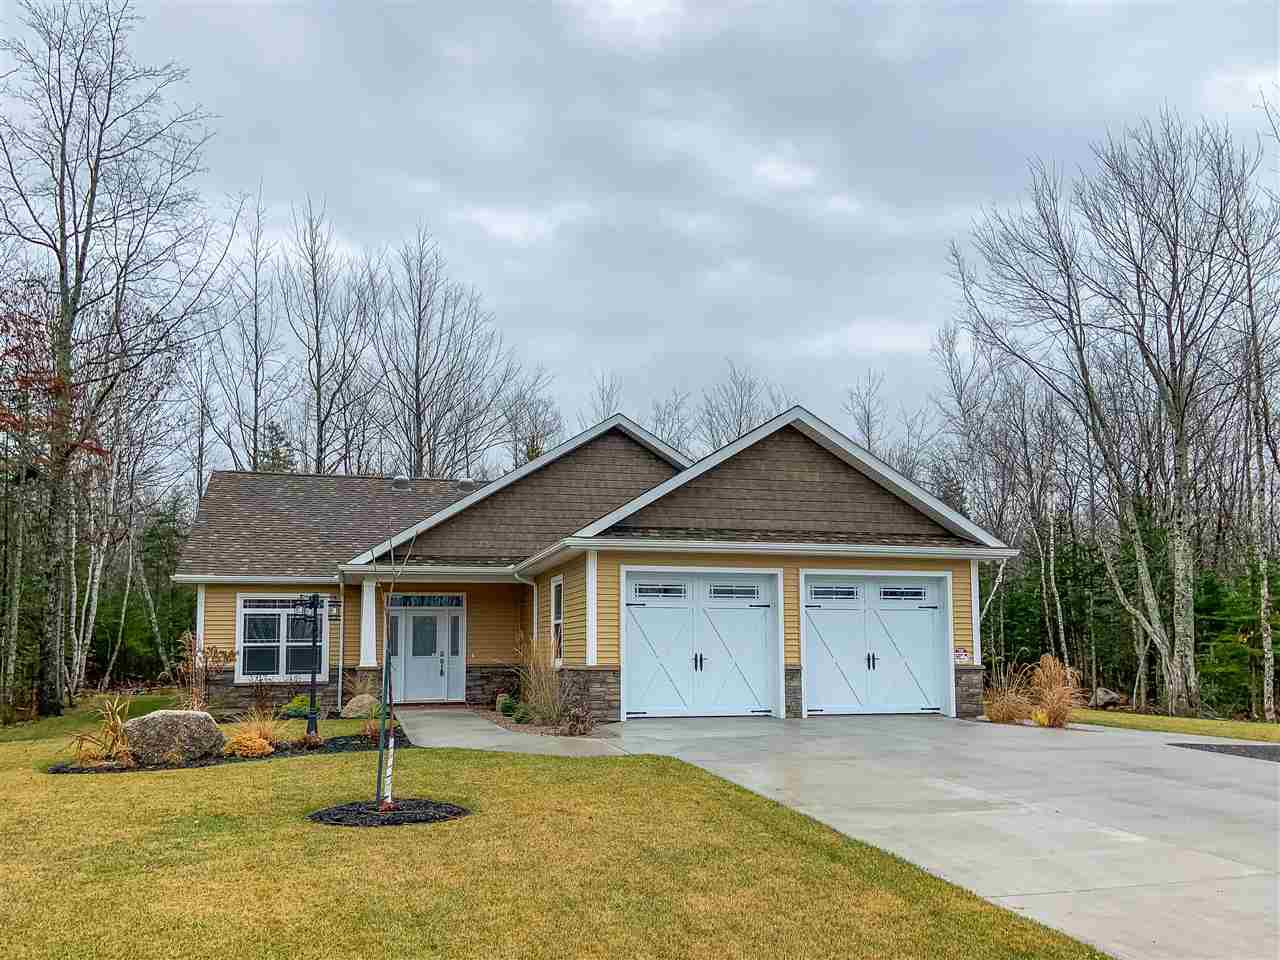 Main Photo: 321 Veterans Drive in Berwick: 404-Kings County Residential for sale (Annapolis Valley)  : MLS®# 202023657